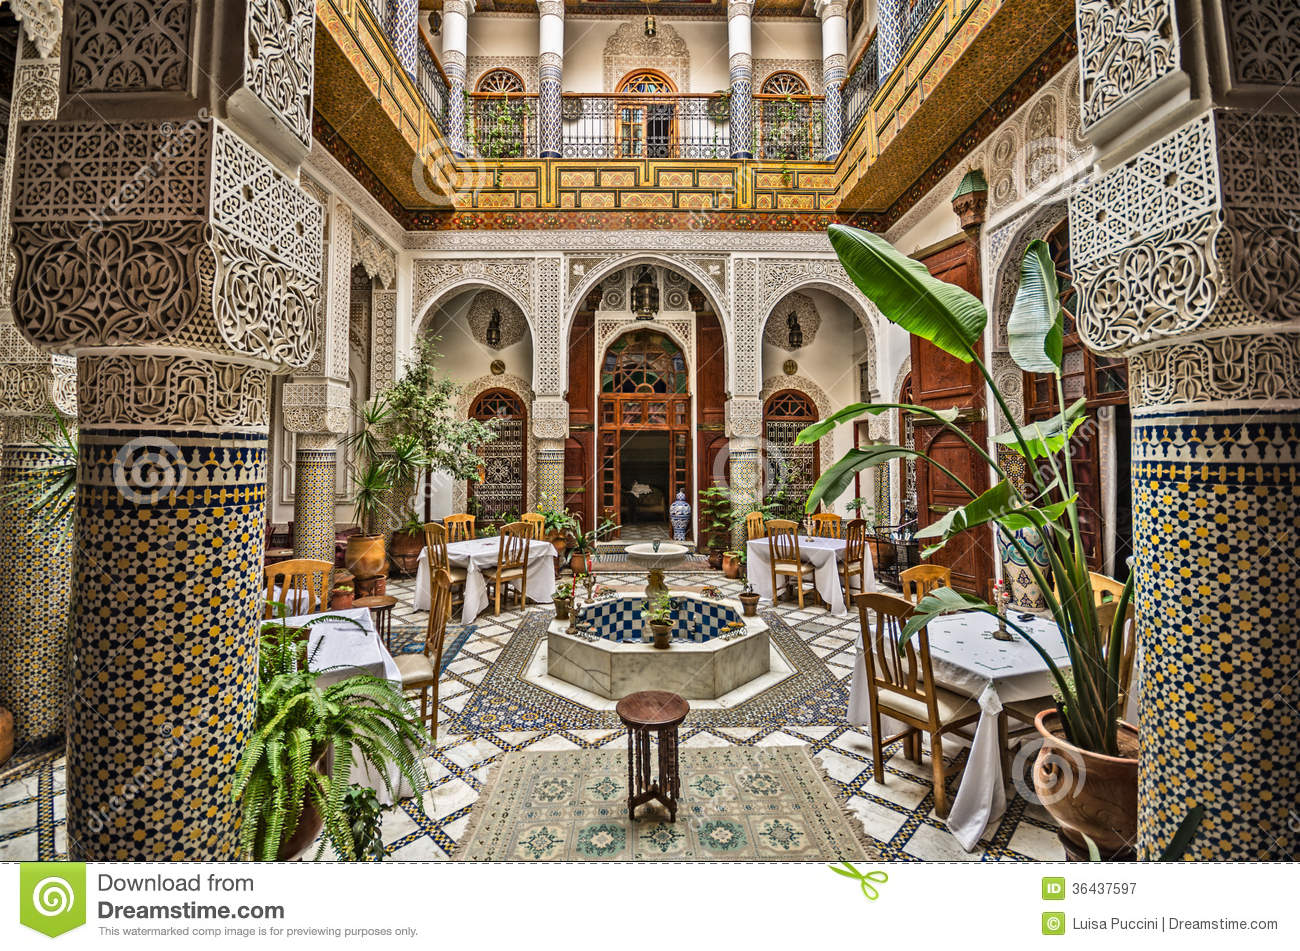 moroccan interior royalty free stock photography - image: 36437597